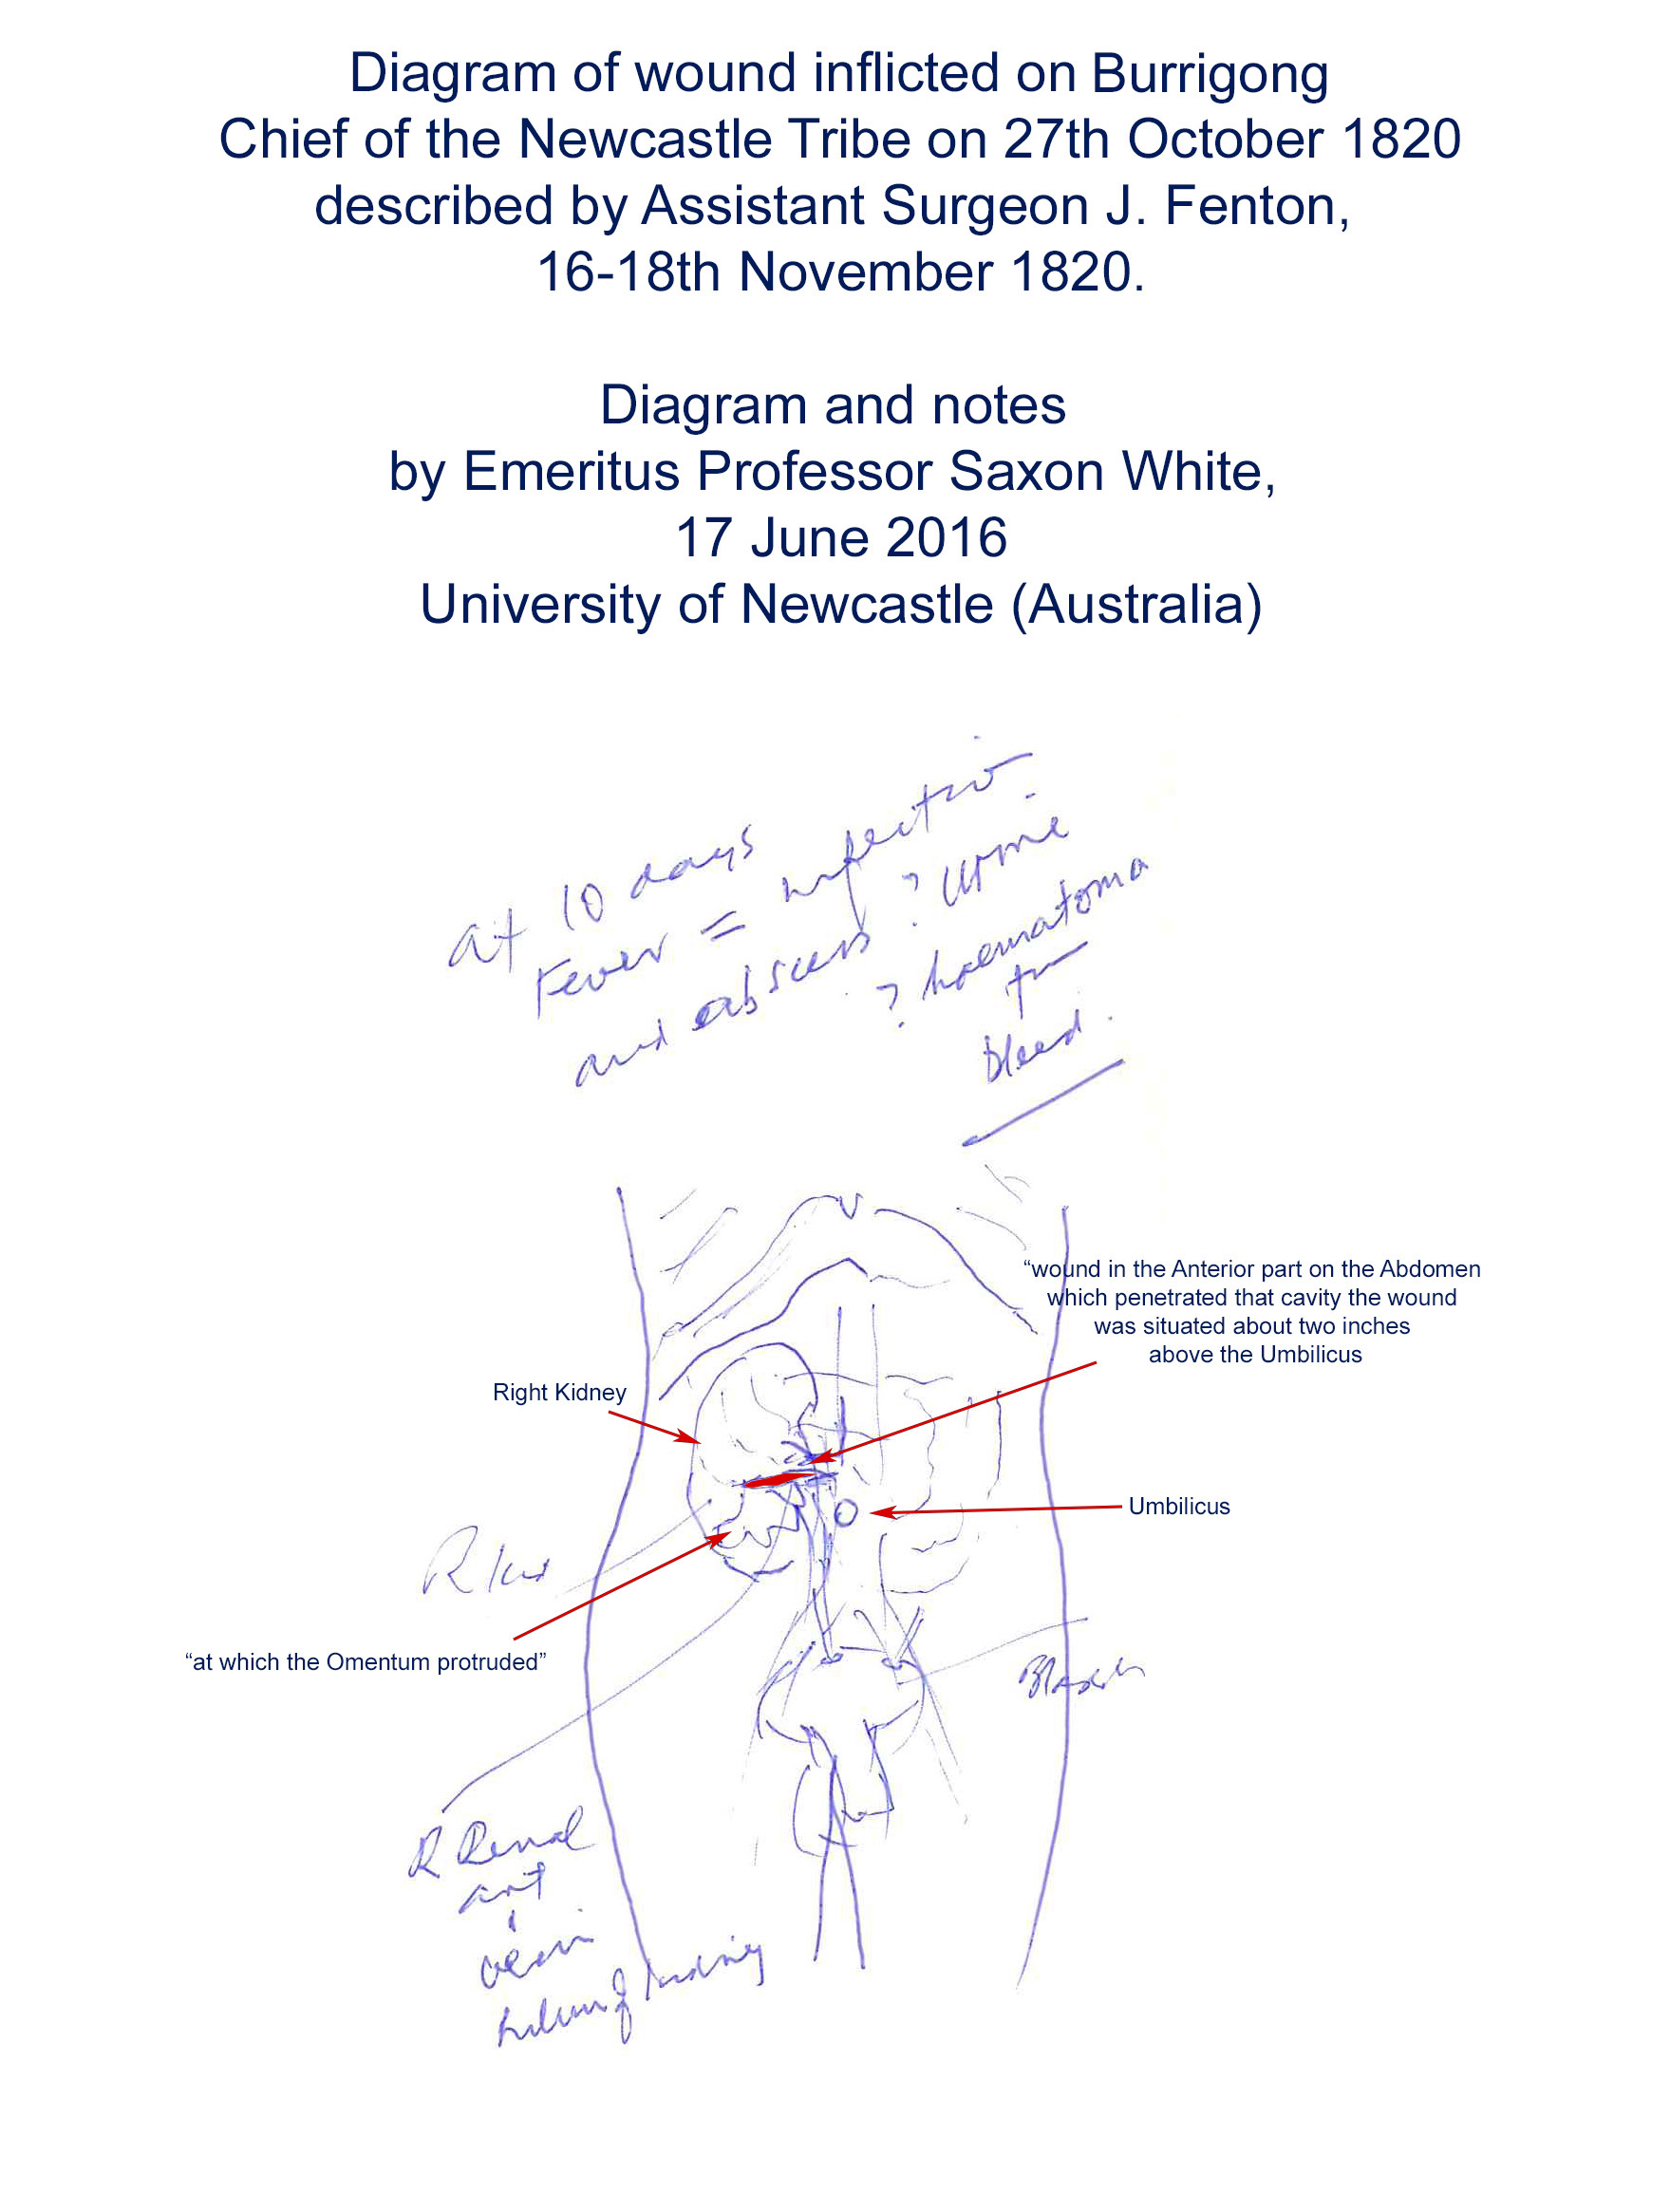 Diagram showing wound inflicted on 'Burrigong', by Emeritus Professor Saxon White (17 June 2016)